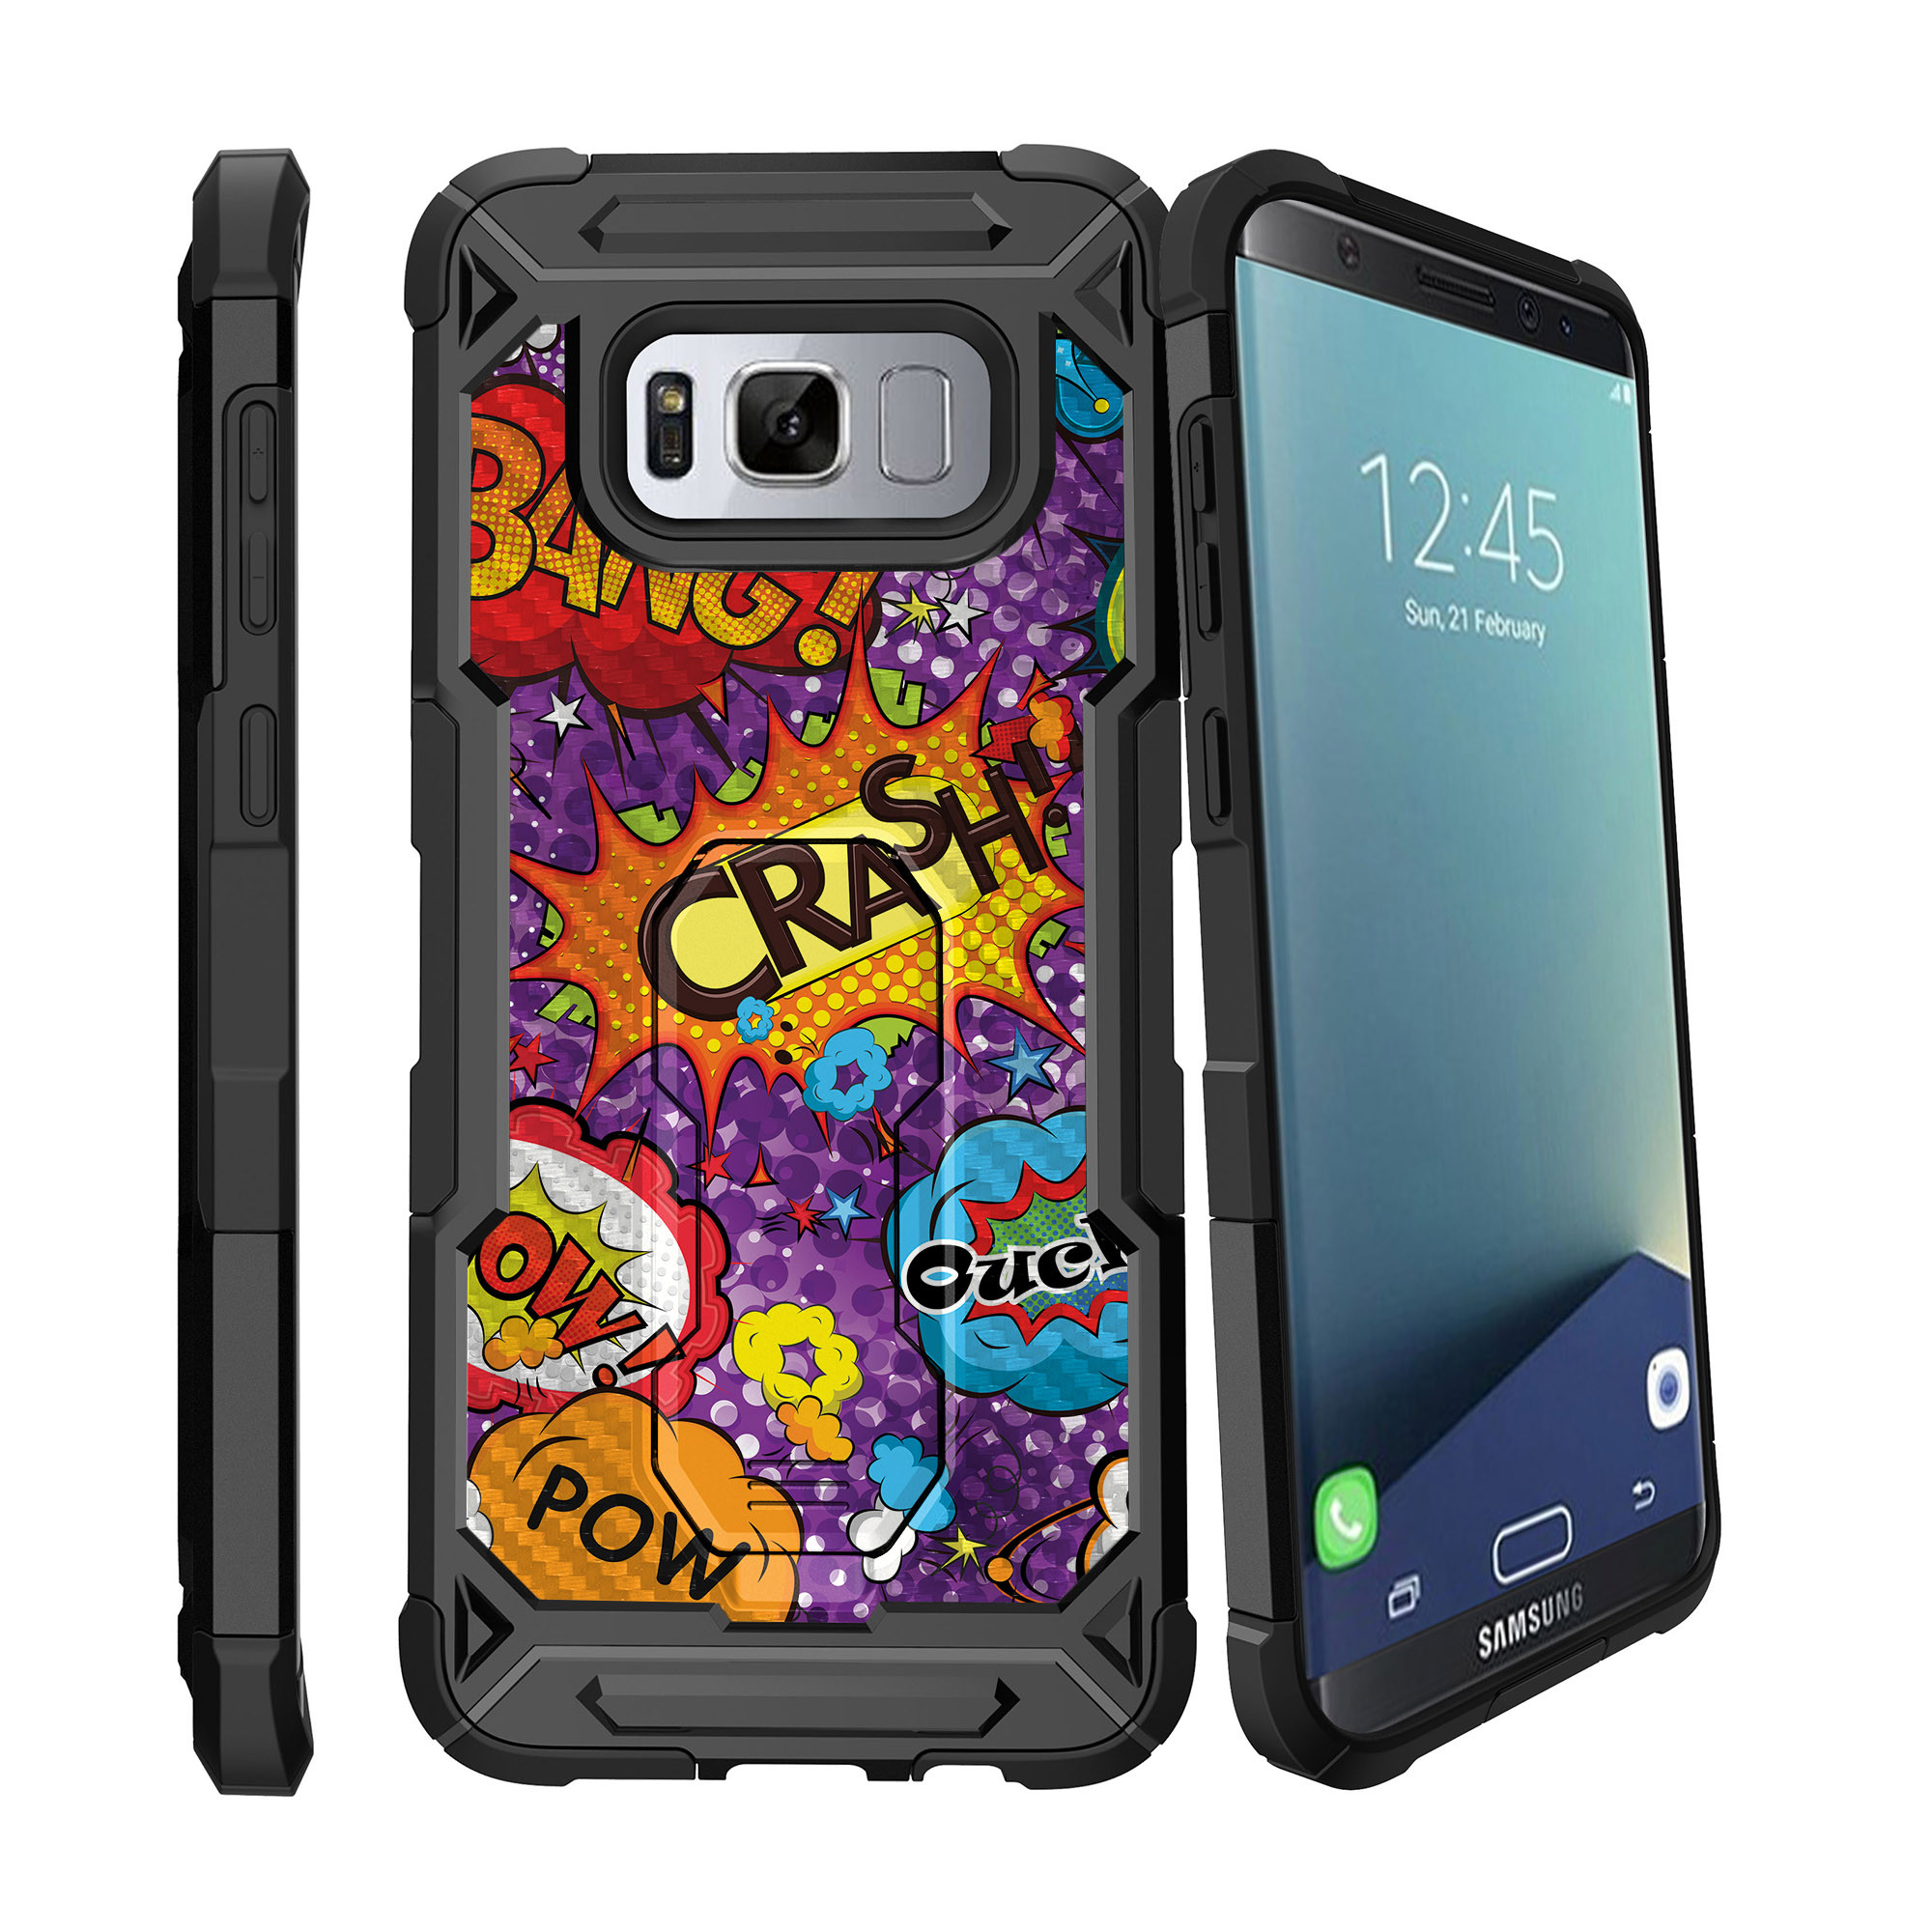 Case for Samsung Galaxy S8 Plus Version [ UFO Defense Case ][Galaxy S8 PLUS SM-G955][Black Silicone] Carbon Fiber Texture Case with Holster + Stand Comic Collection